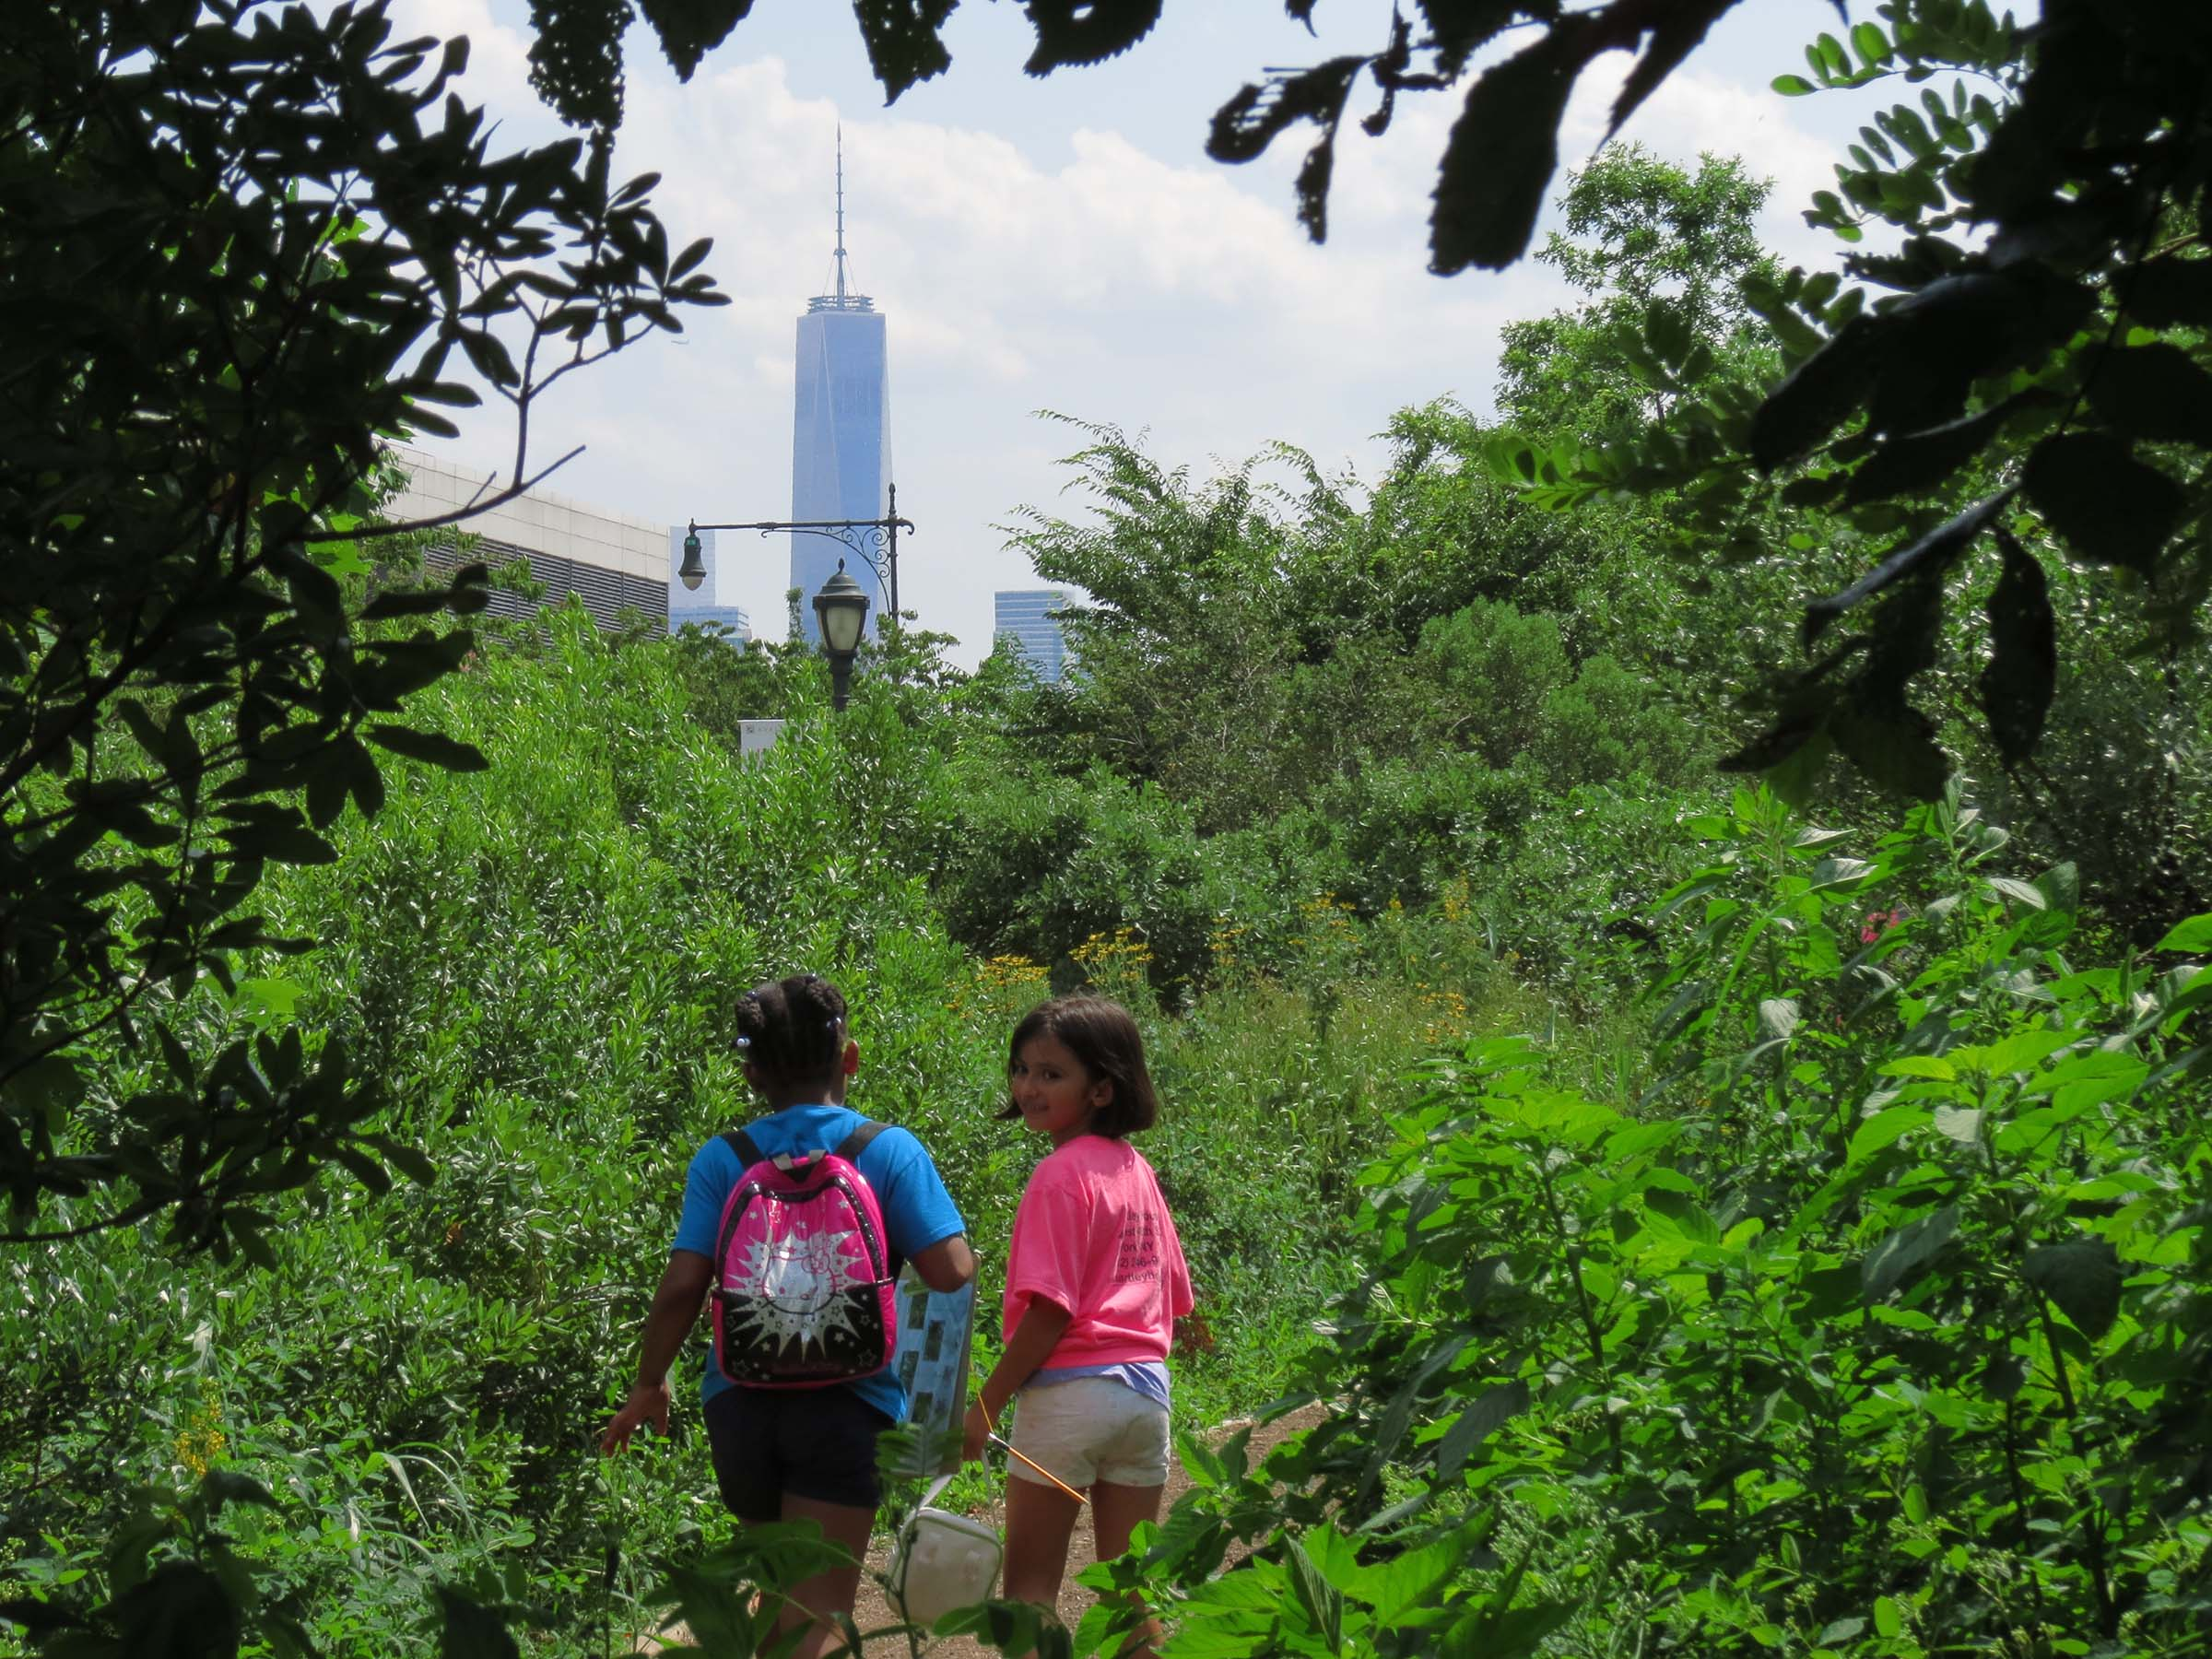 Two students walk through the greenery in the Tribeca Gardens